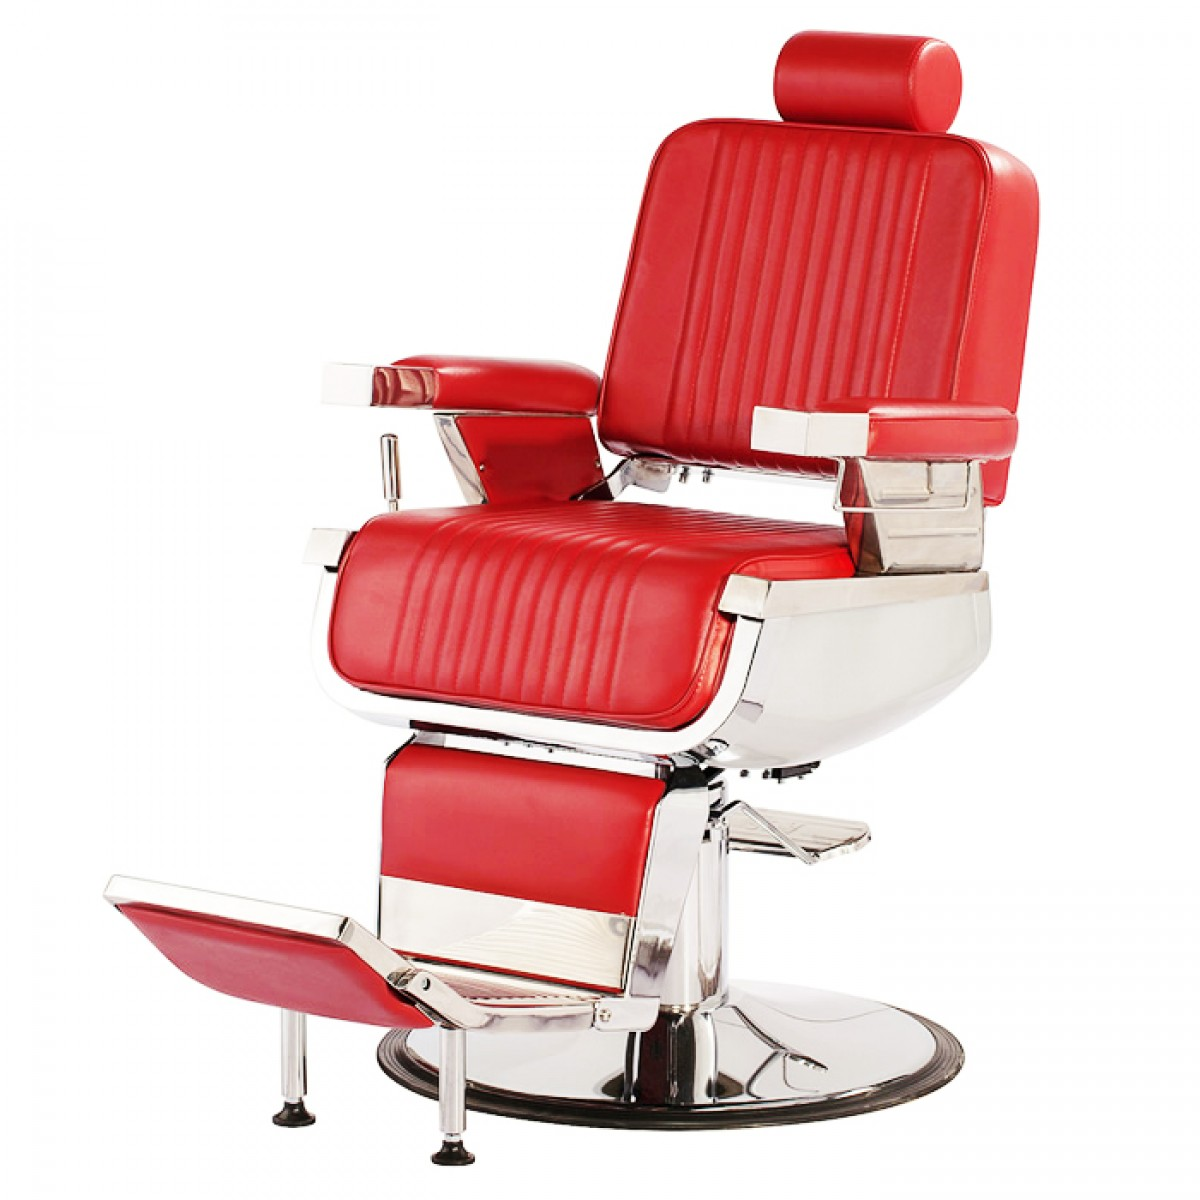 pedicure chair manufacturers aeron spare parts all purpose reclining vintage barber for sale oem